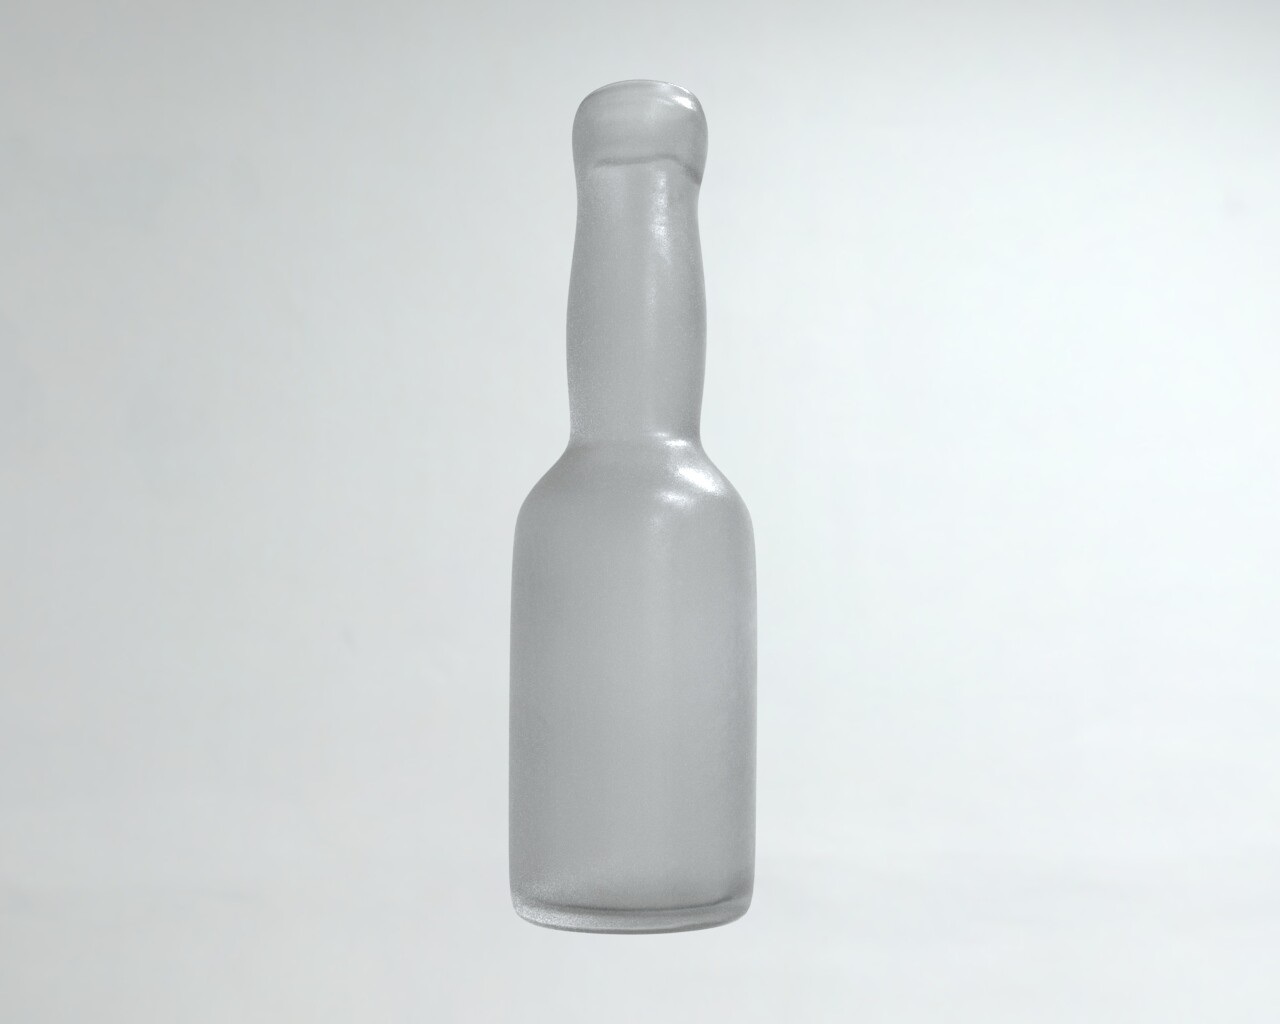 Dig Hill 80 Artifacts: Bottle, Object 1243